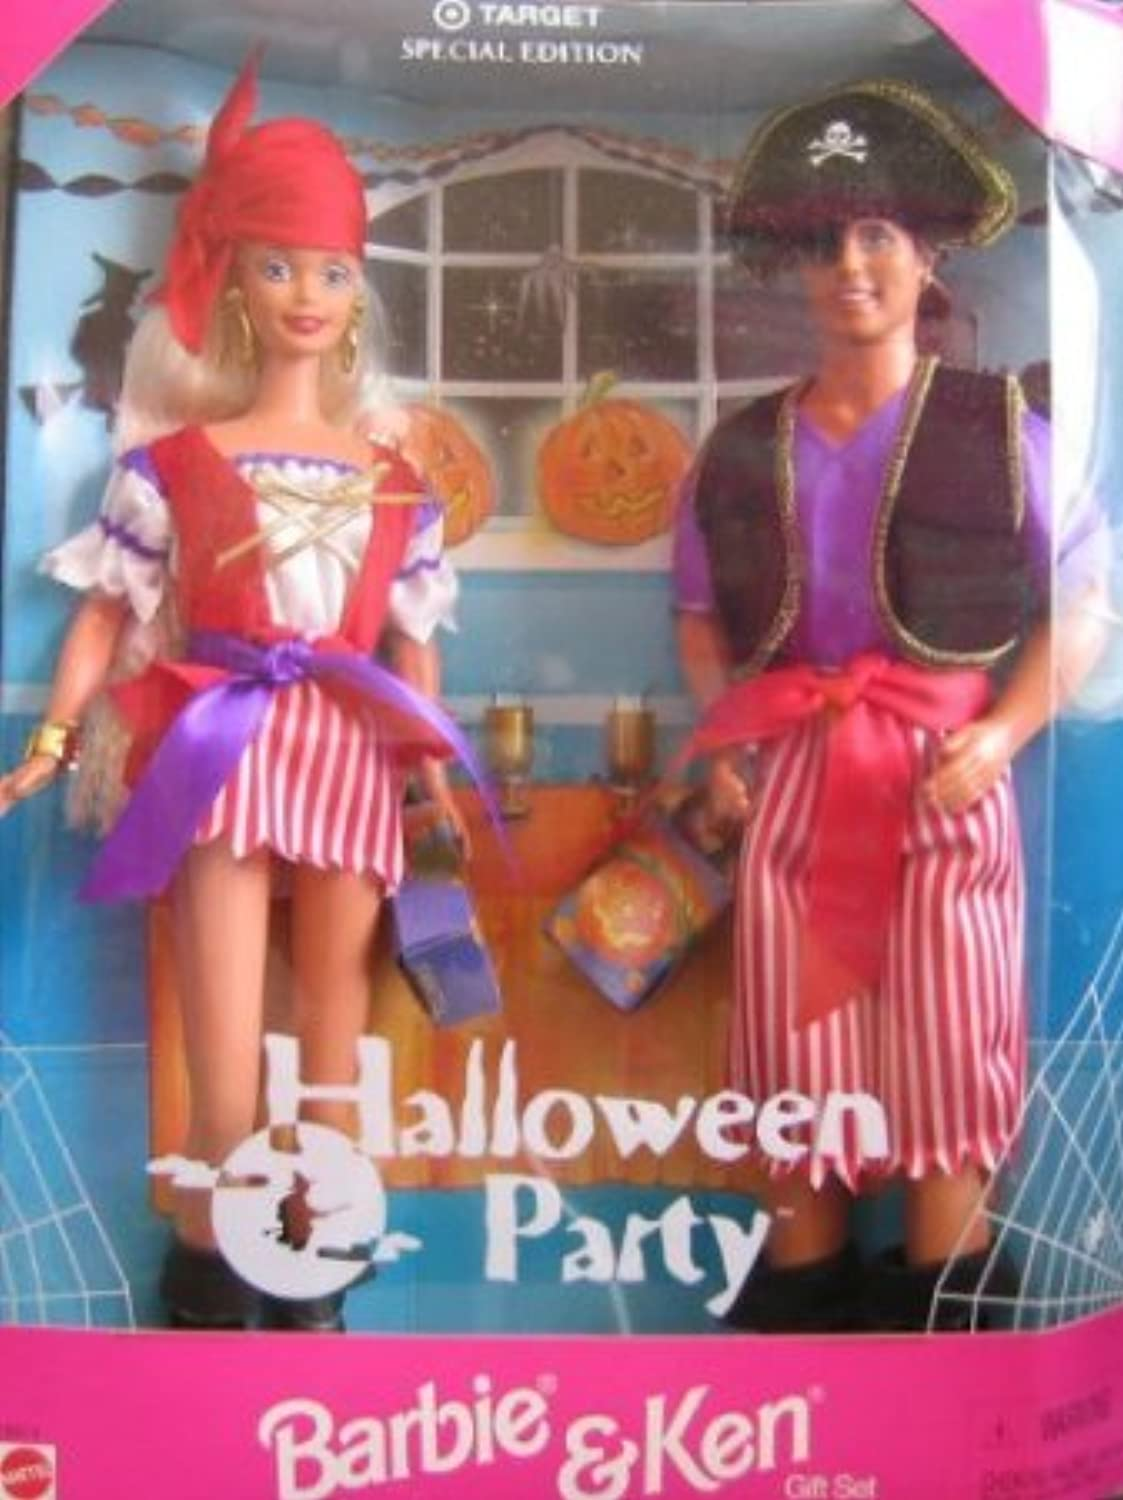 Target Special Edition Halloween Party Barbie(バービー) and Ken ドール 人形 フィギュア(並行輸入)